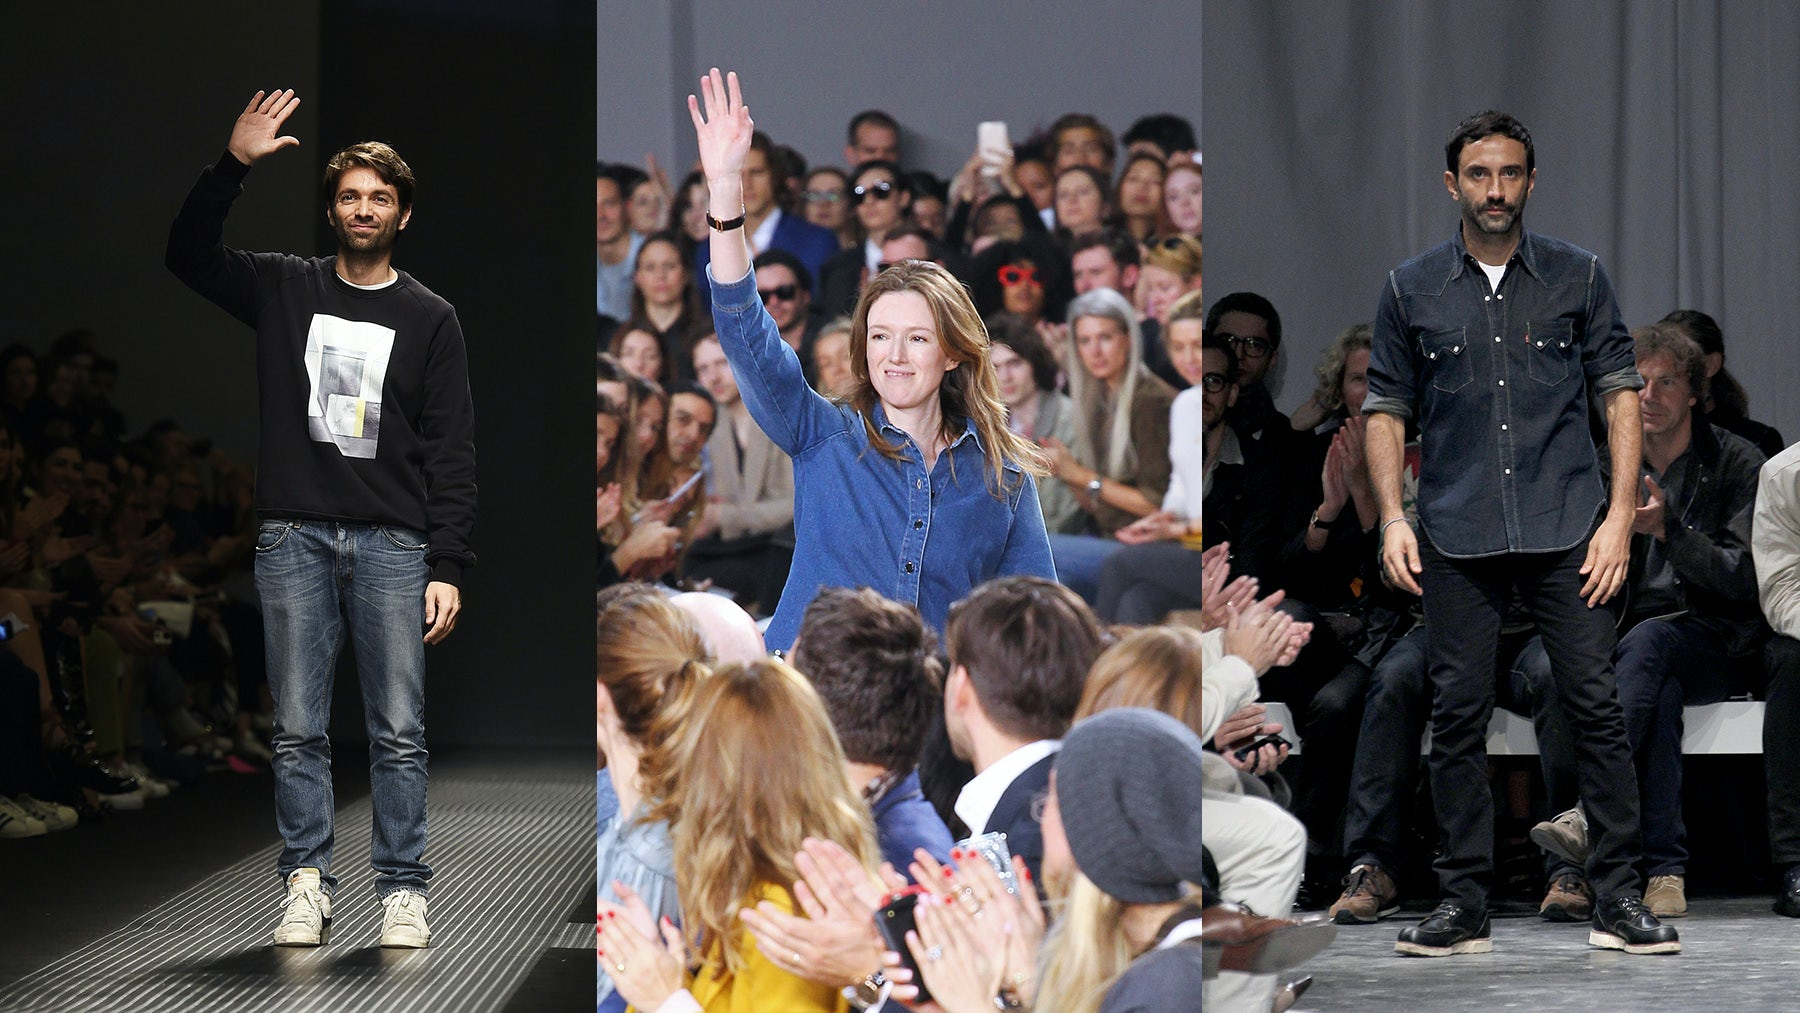 From left: Massimo Giorgetti, Clare Waight Keller, Riccardo Tisci | Source: Indigital